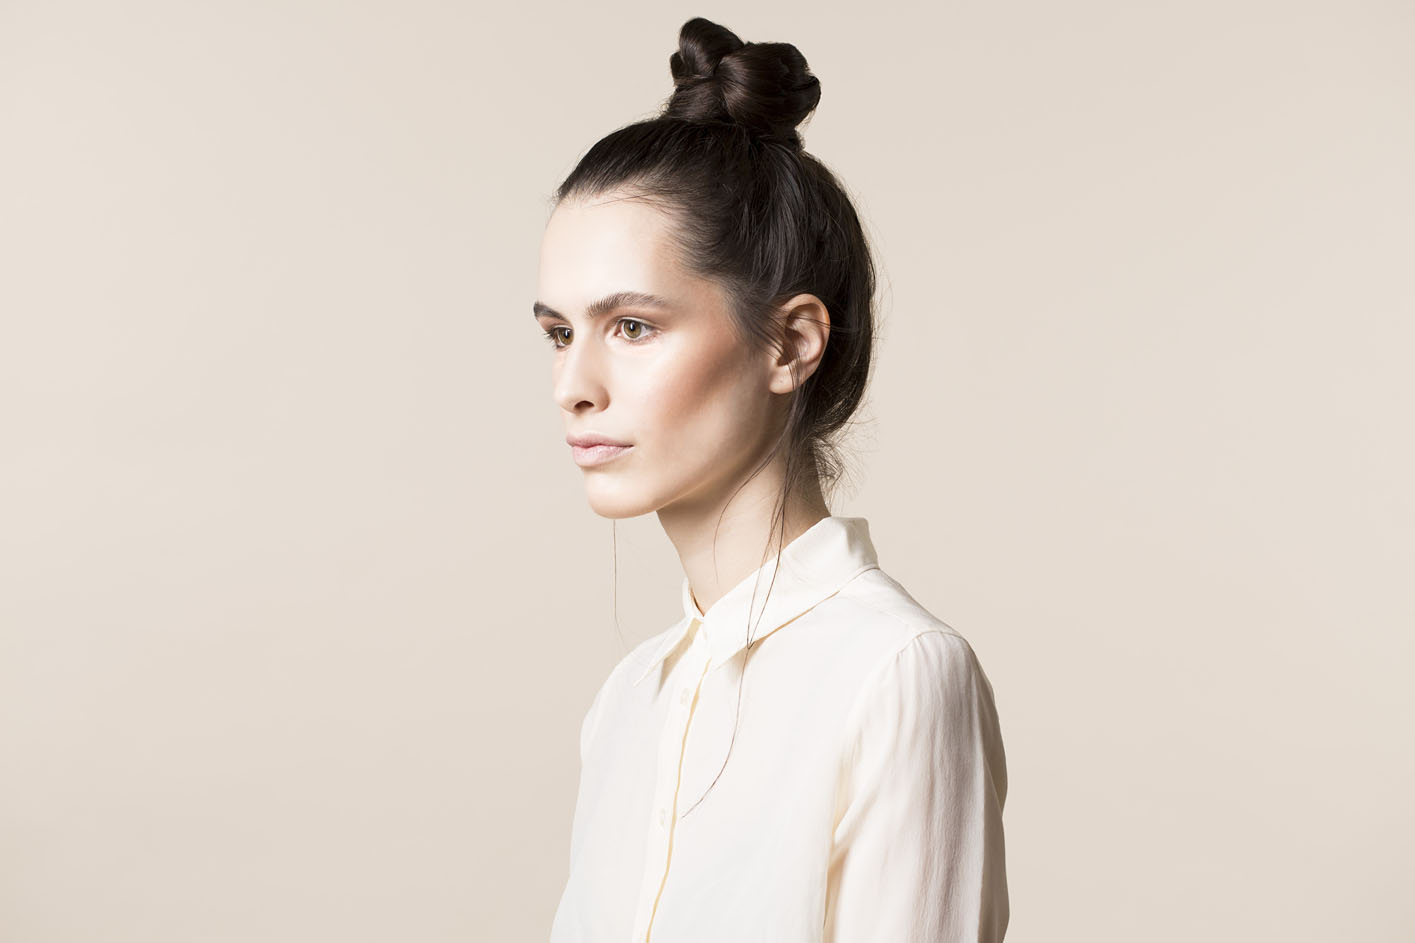 Photo: studio beauty cosmetics campaign photographer Margaret Yescombe, Make-Up Artist Hairstylist Dorota Nowacka, Model Elisabeth. Pale look, cream shirt, hair bun knot, profile portrait image